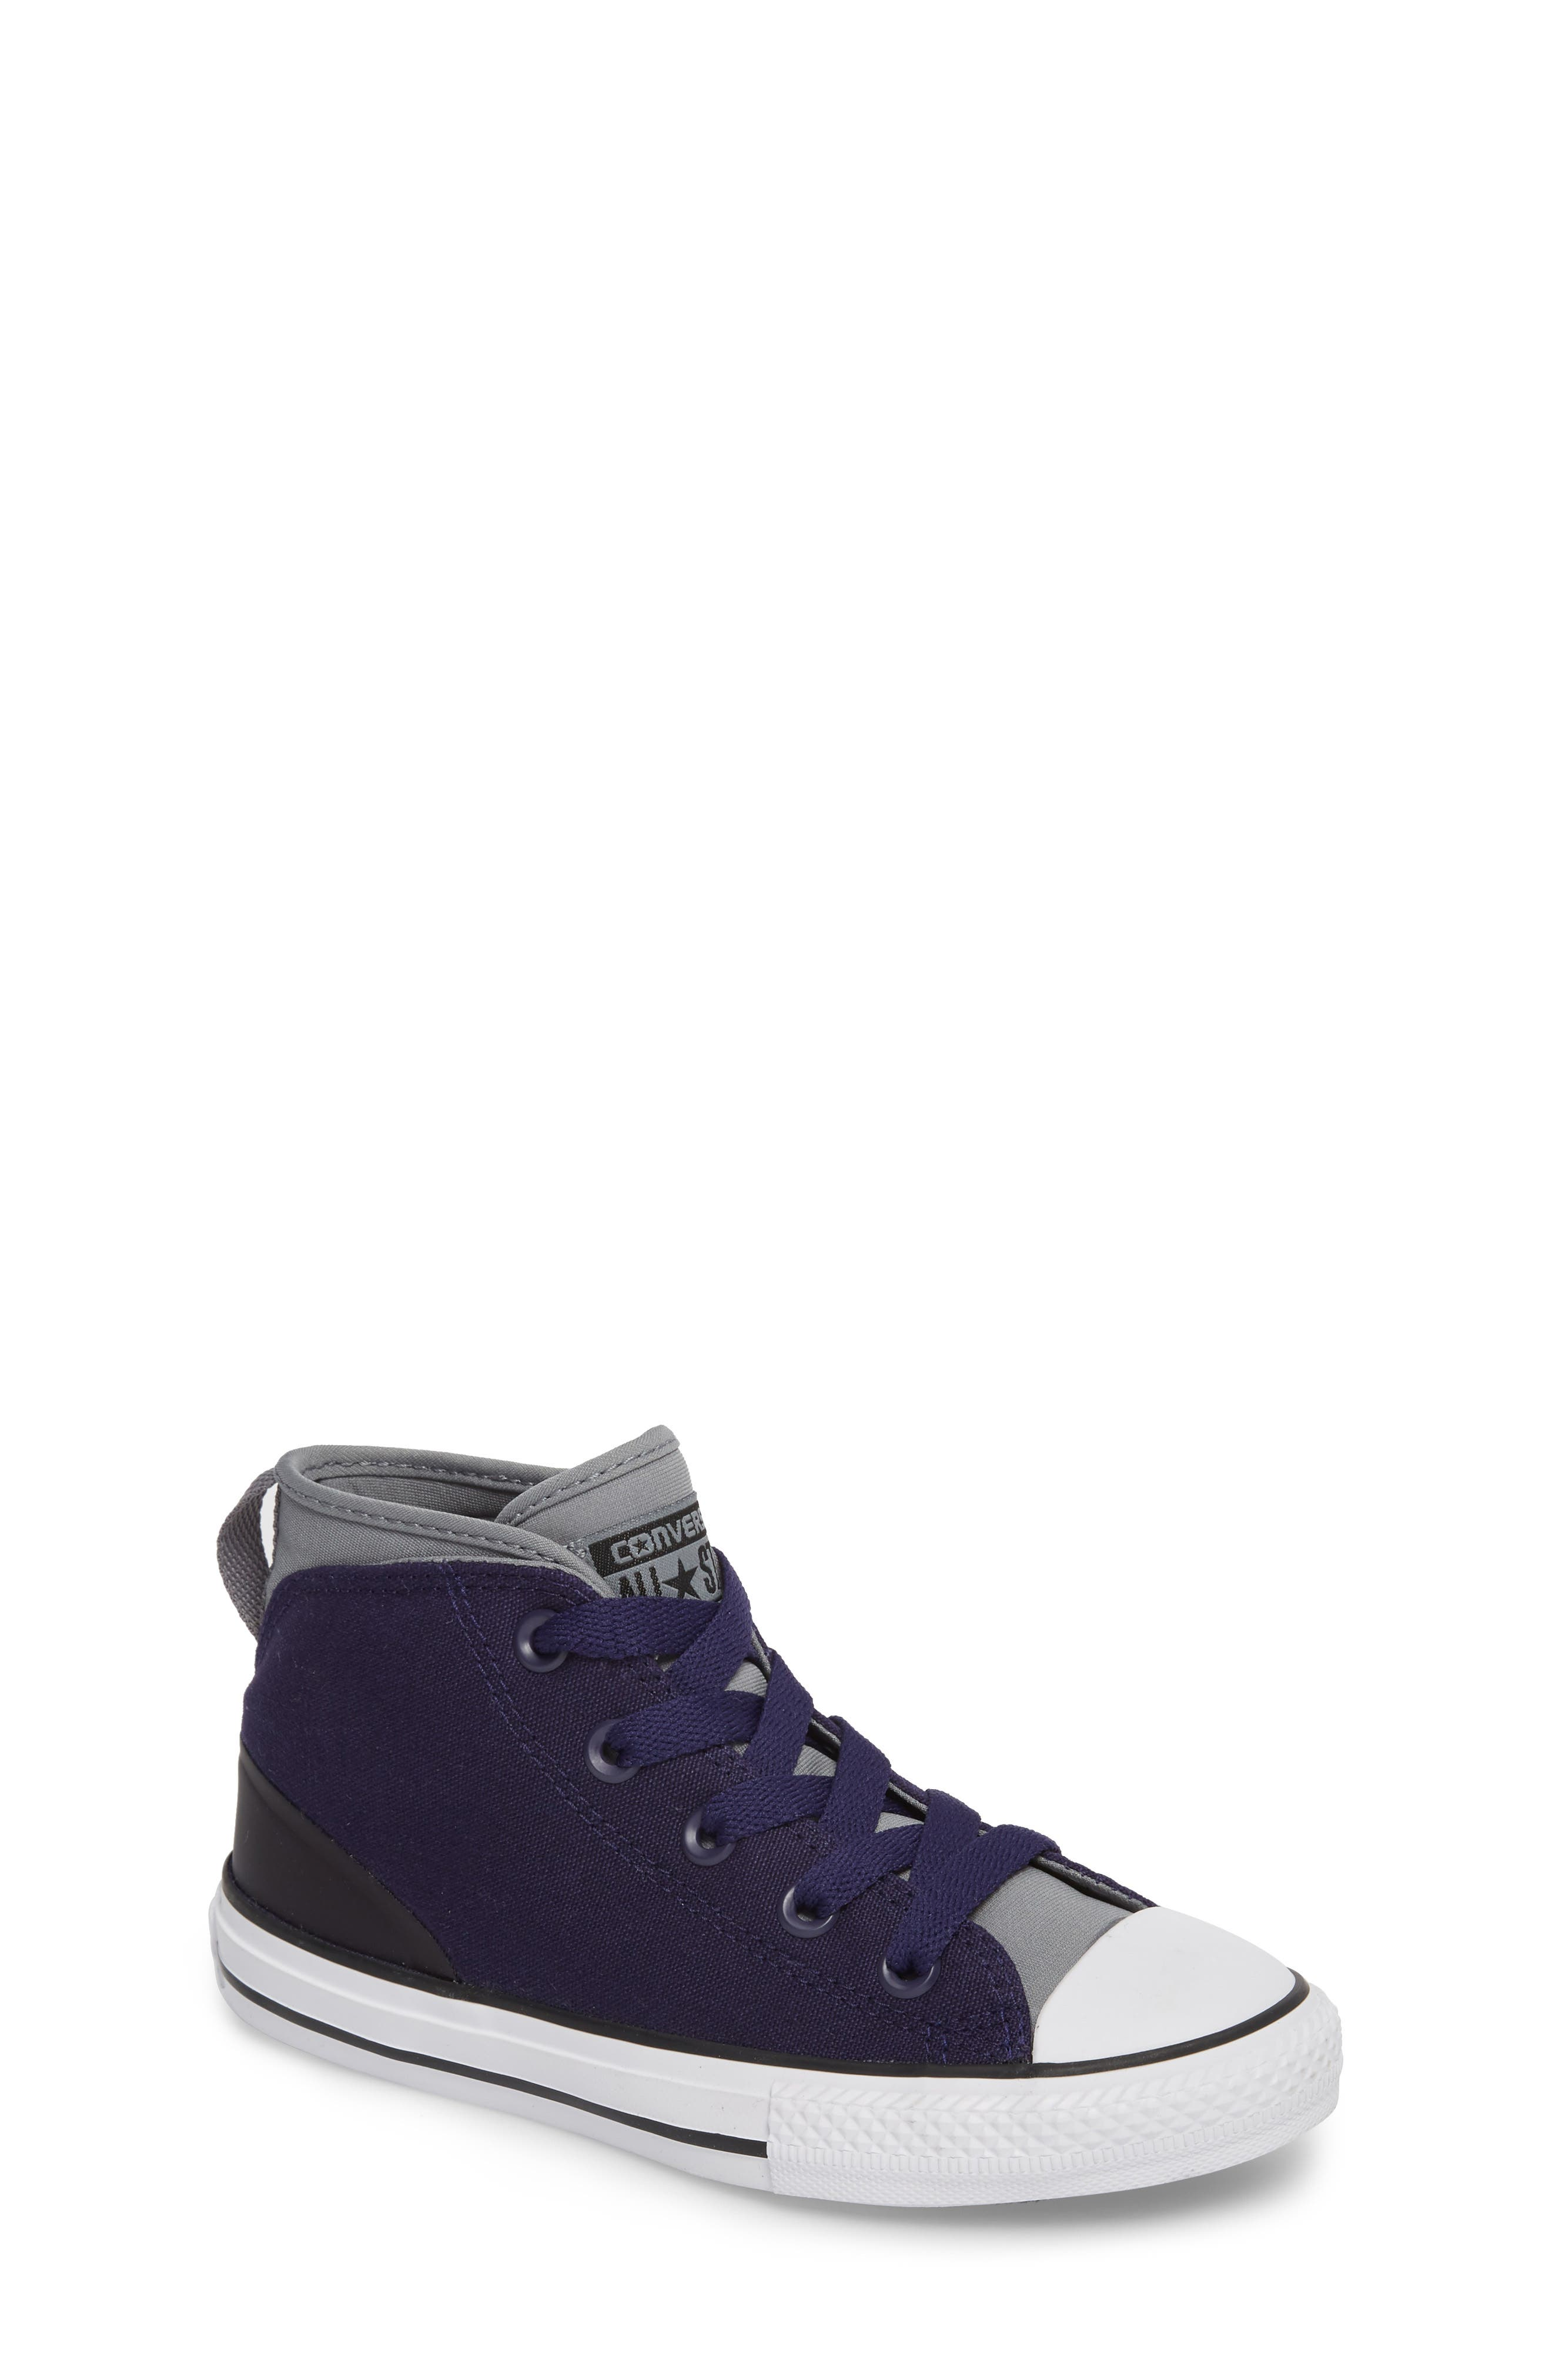 Chuck Taylor<sup>®</sup> All Star<sup>®</sup> Syde Street High Top Sneaker,                         Main,                         color,